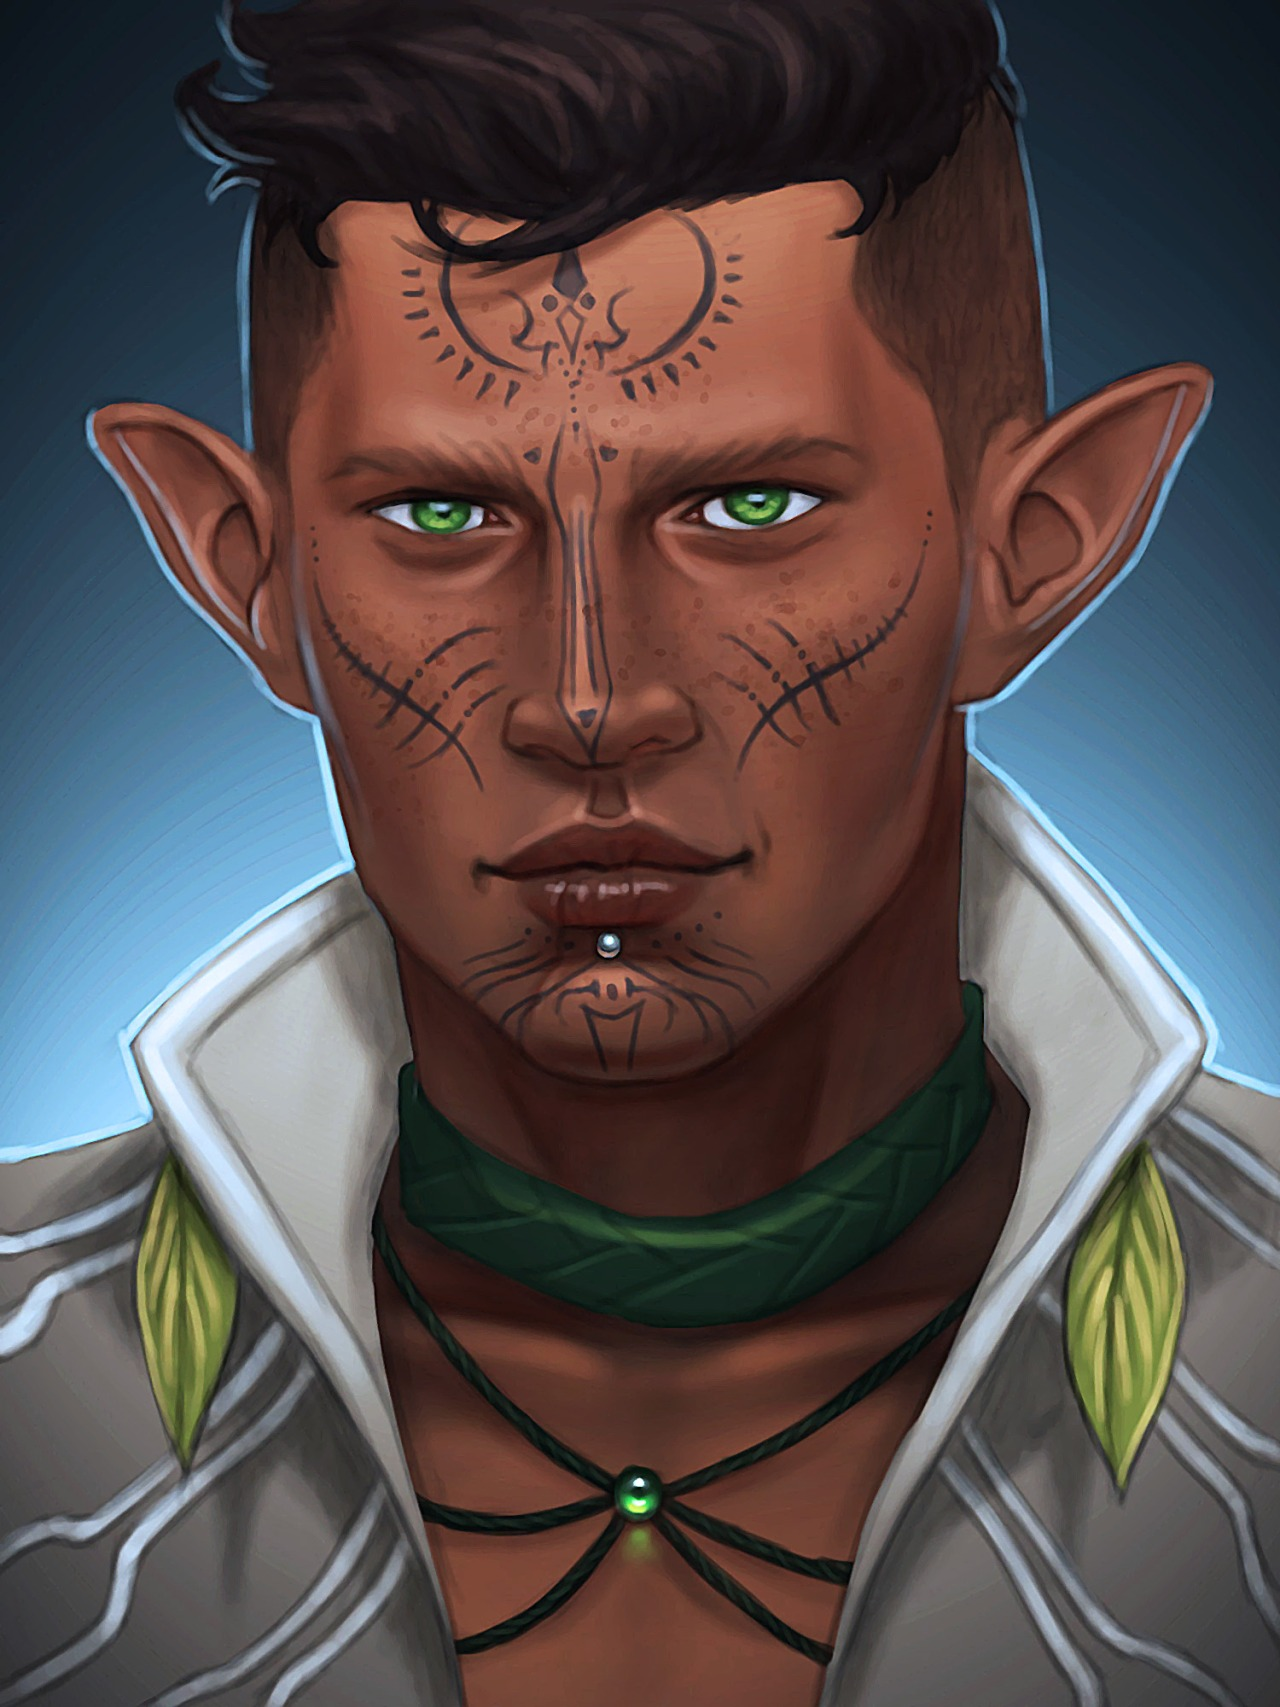 merwild: Mahanon Lavellan for ir-albelas-lavellan Thank you for commissioning me! :D